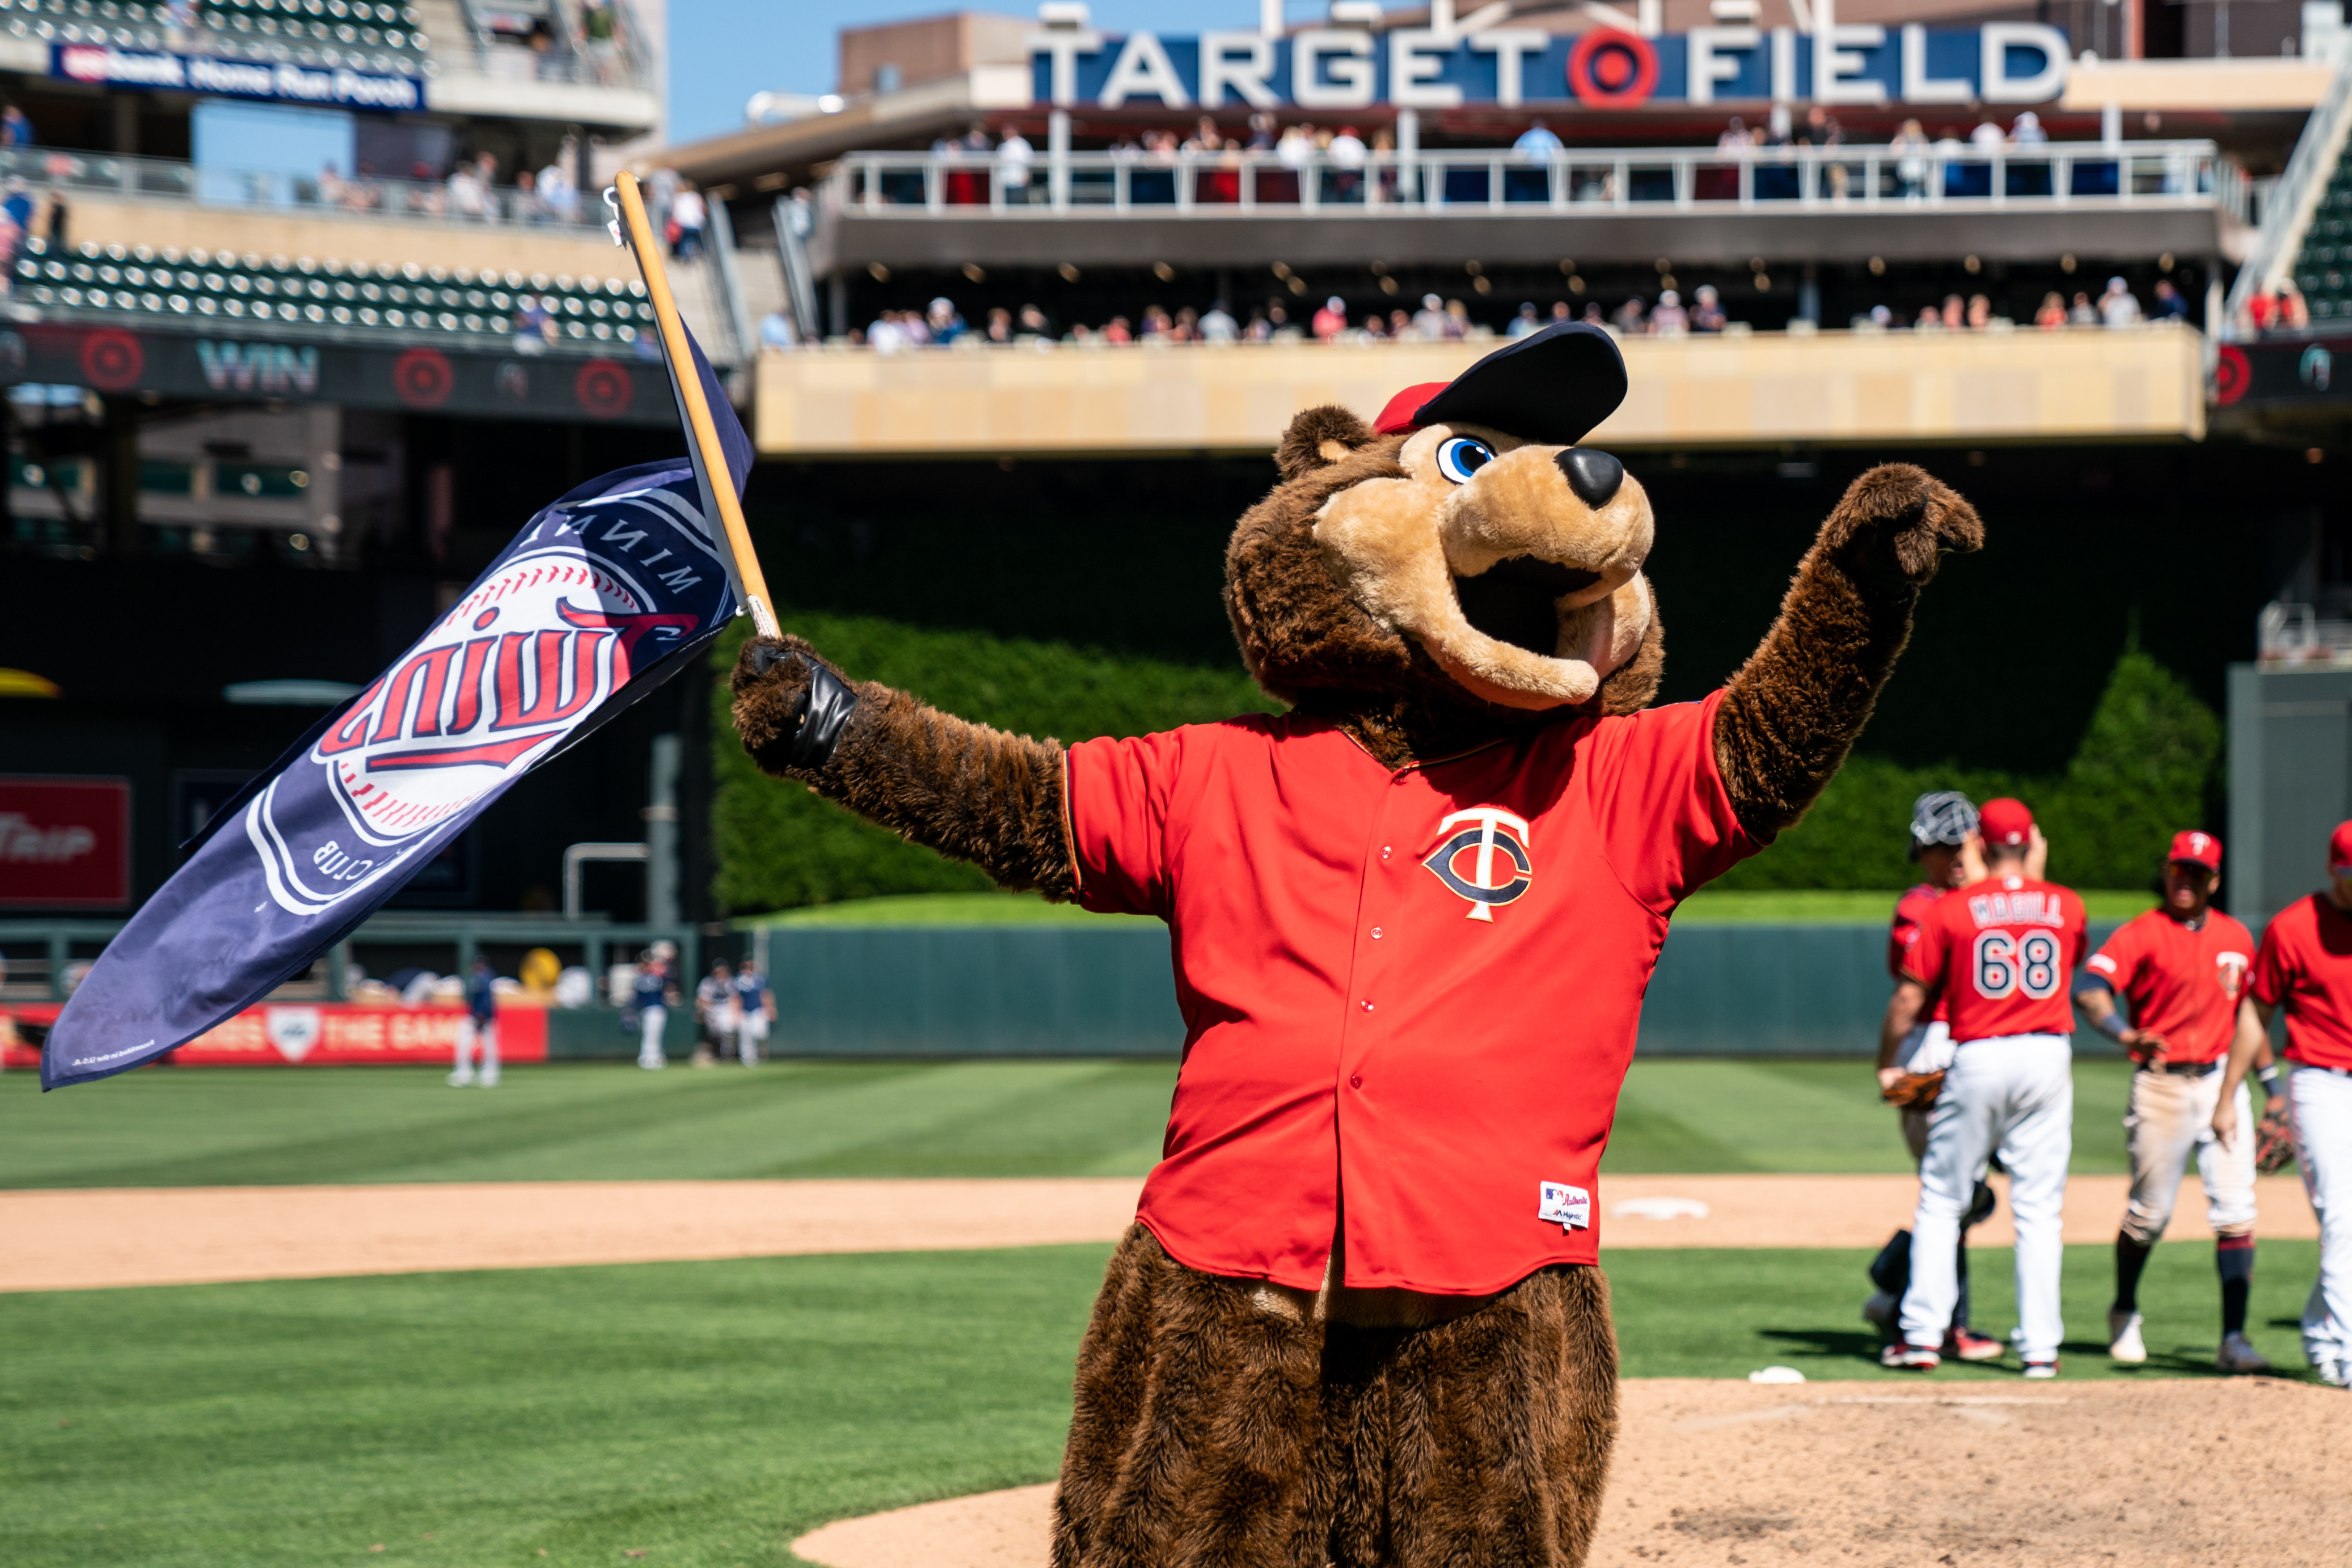 Twins 2020 Schedule Minnesota Twins schedule for 2020 announced   Twinkie Town